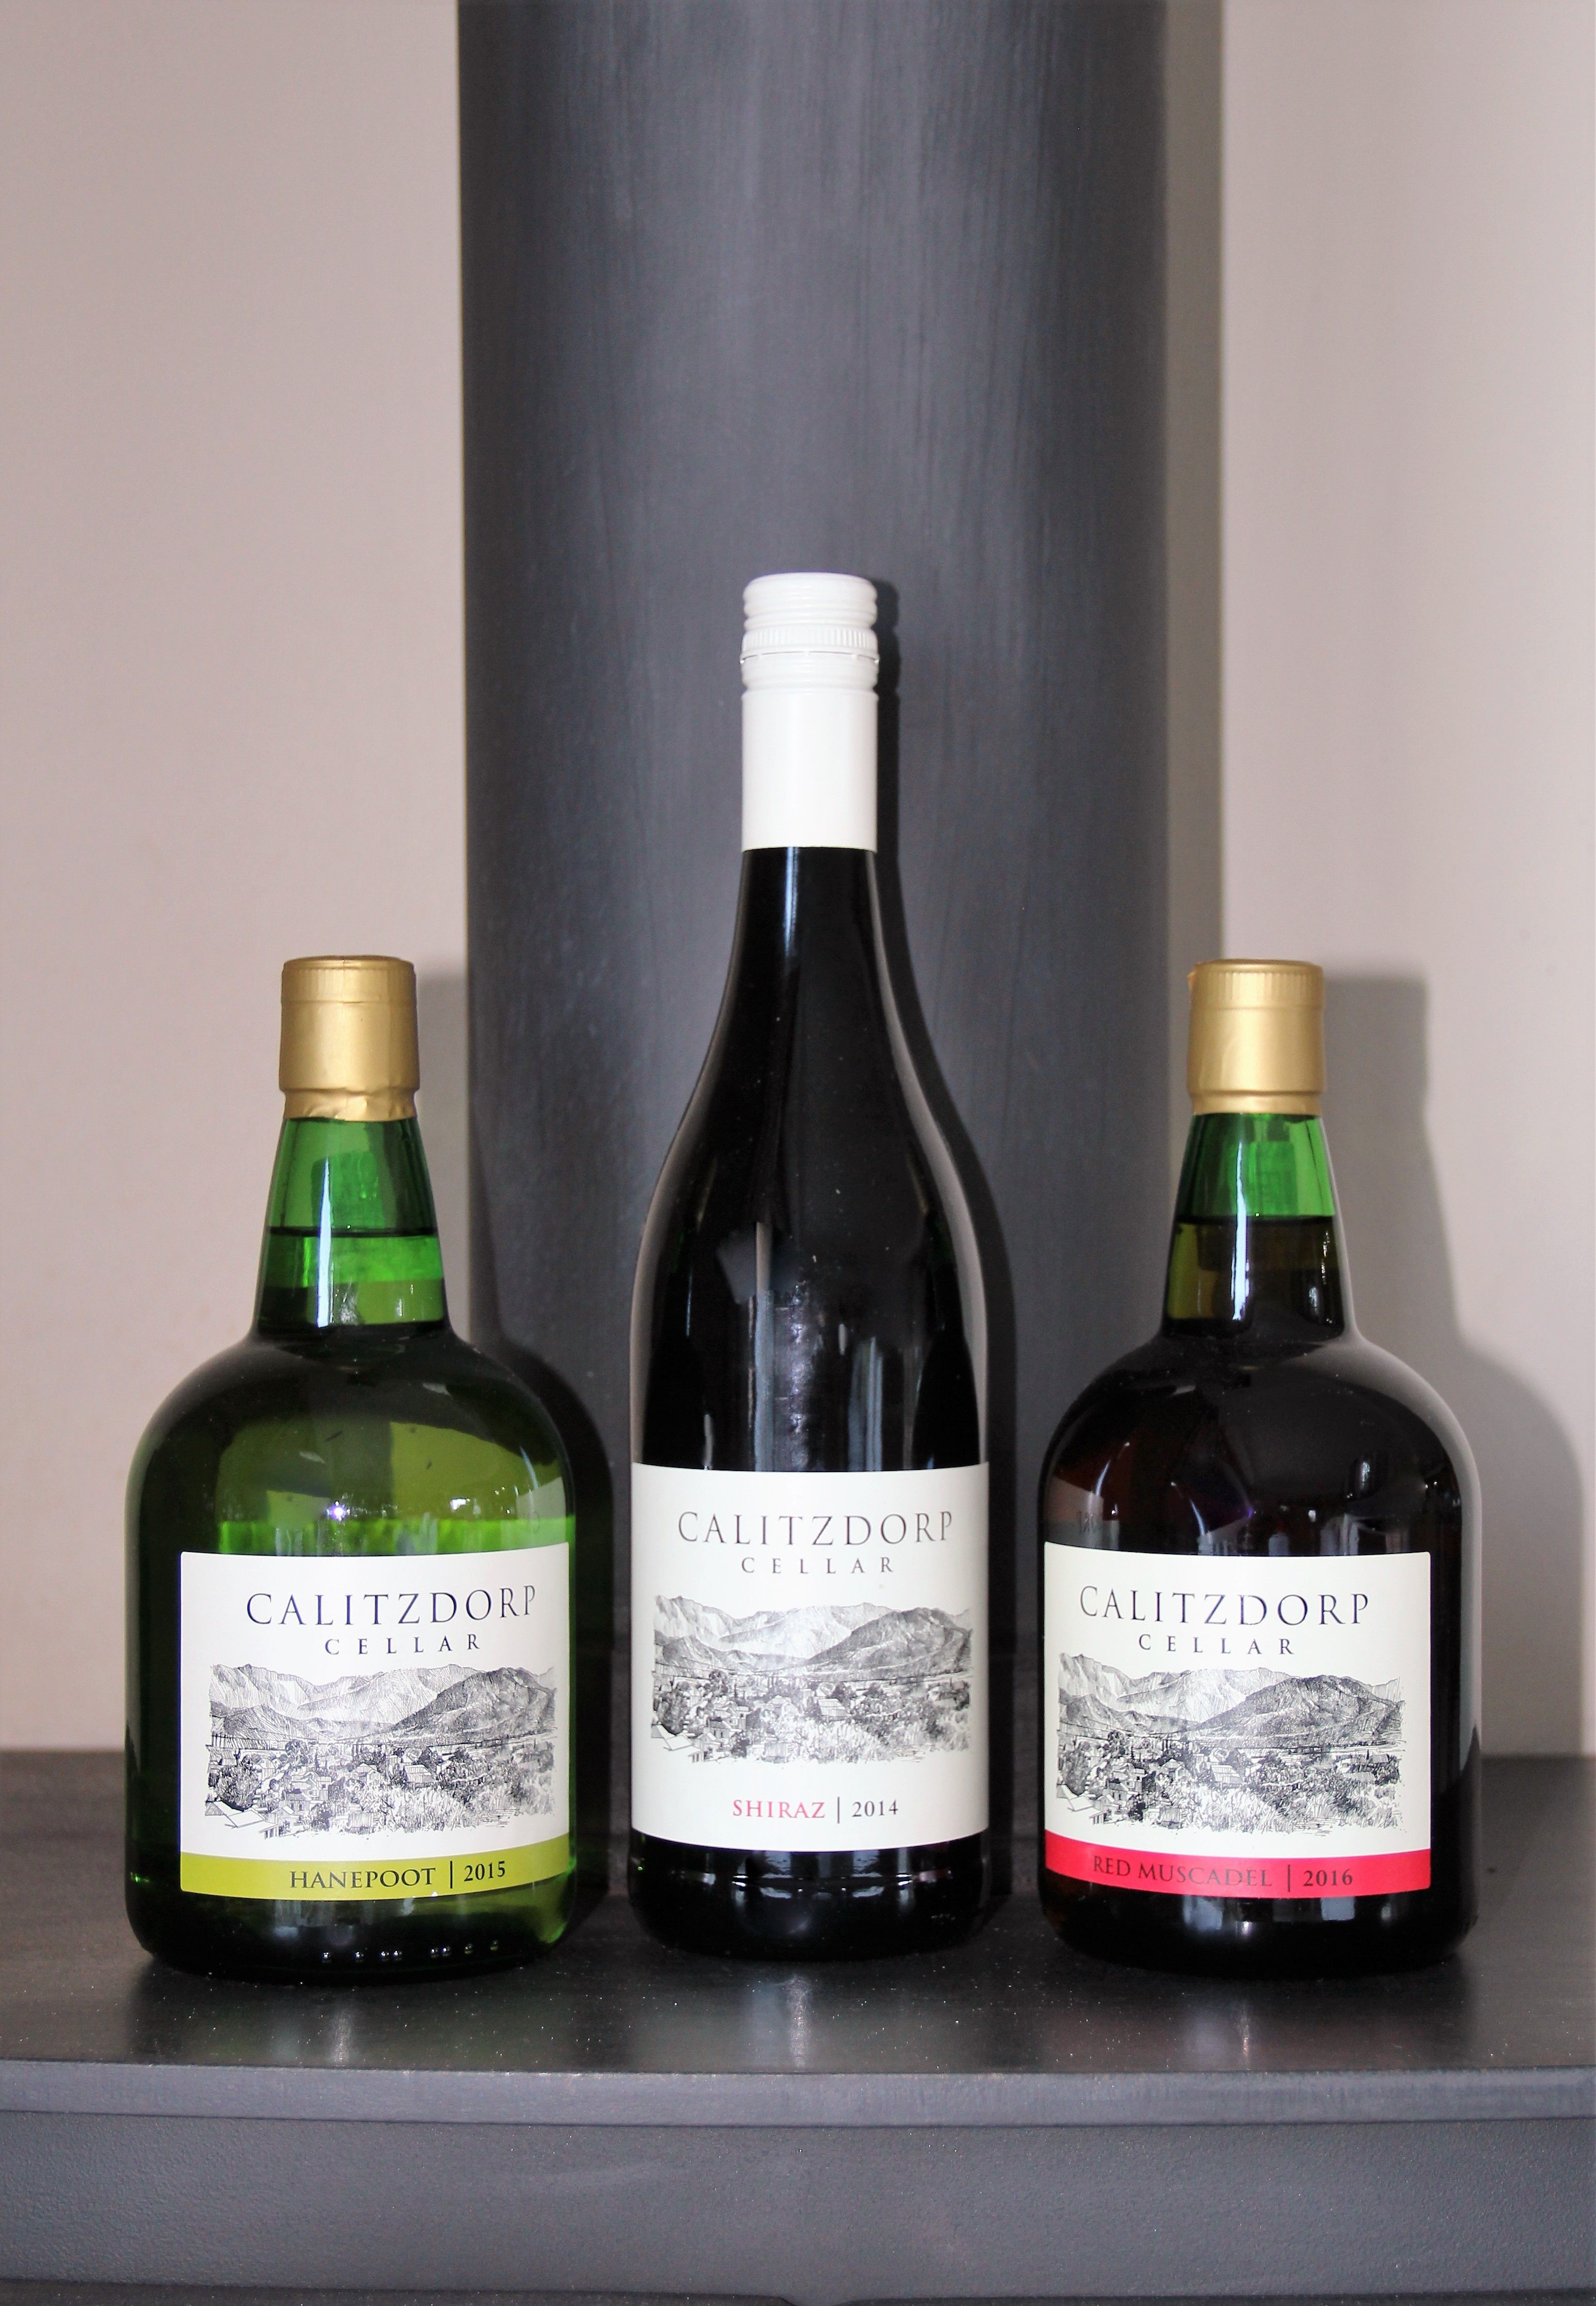 Caliztdorp Winery The Calitzdorp Area Is Well Known For Its